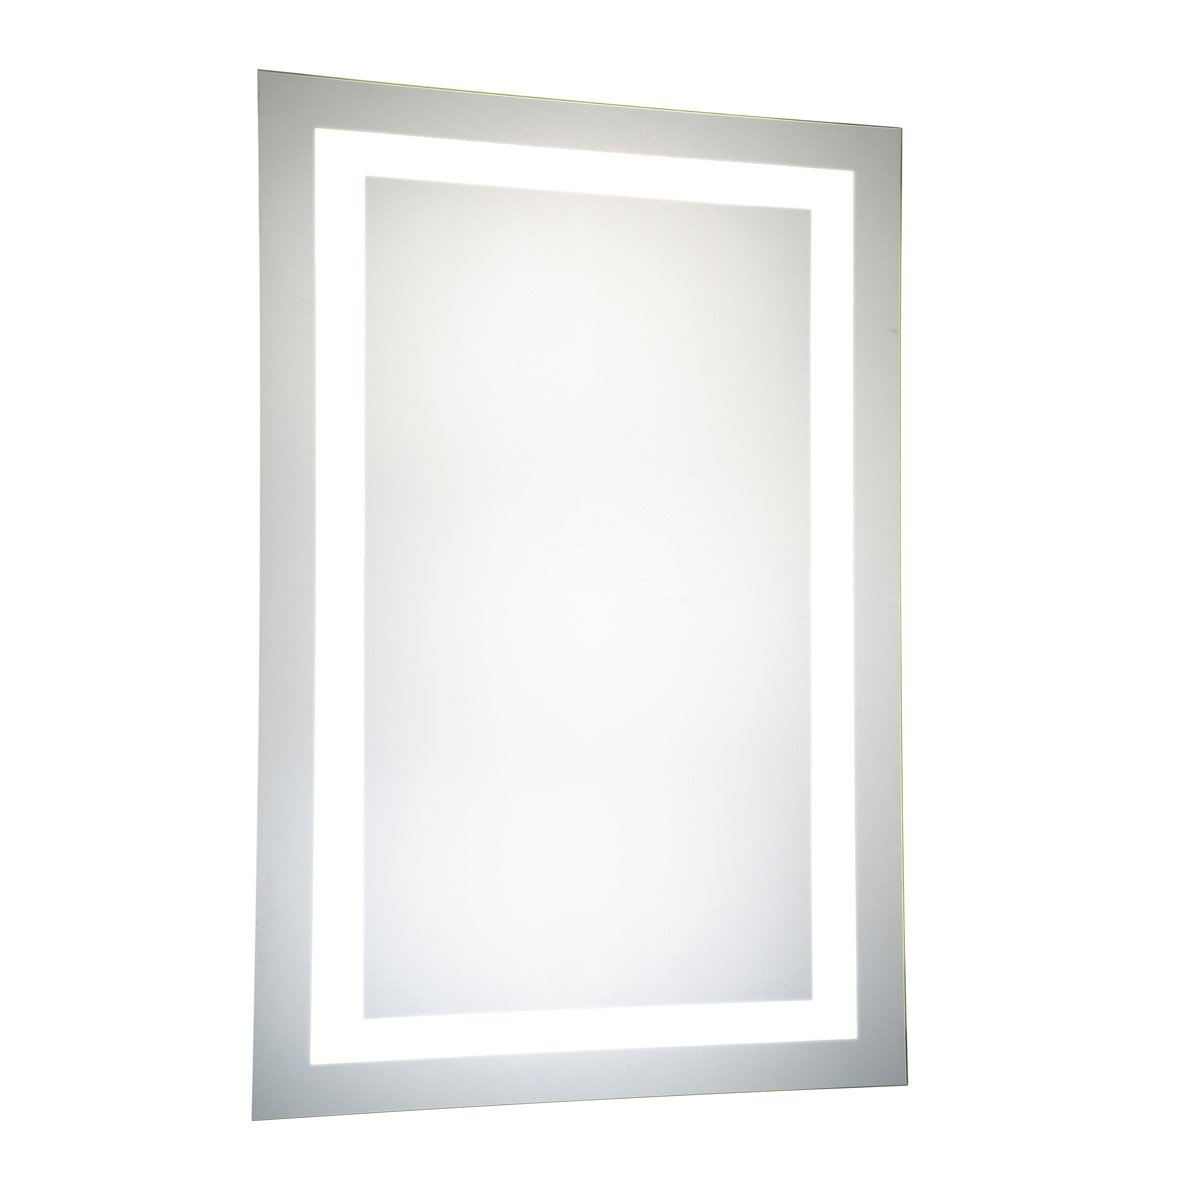 Nova 40 X 24 Hardwired Glossy White Led Wall Mirror (Mre-6004) Led Mirror